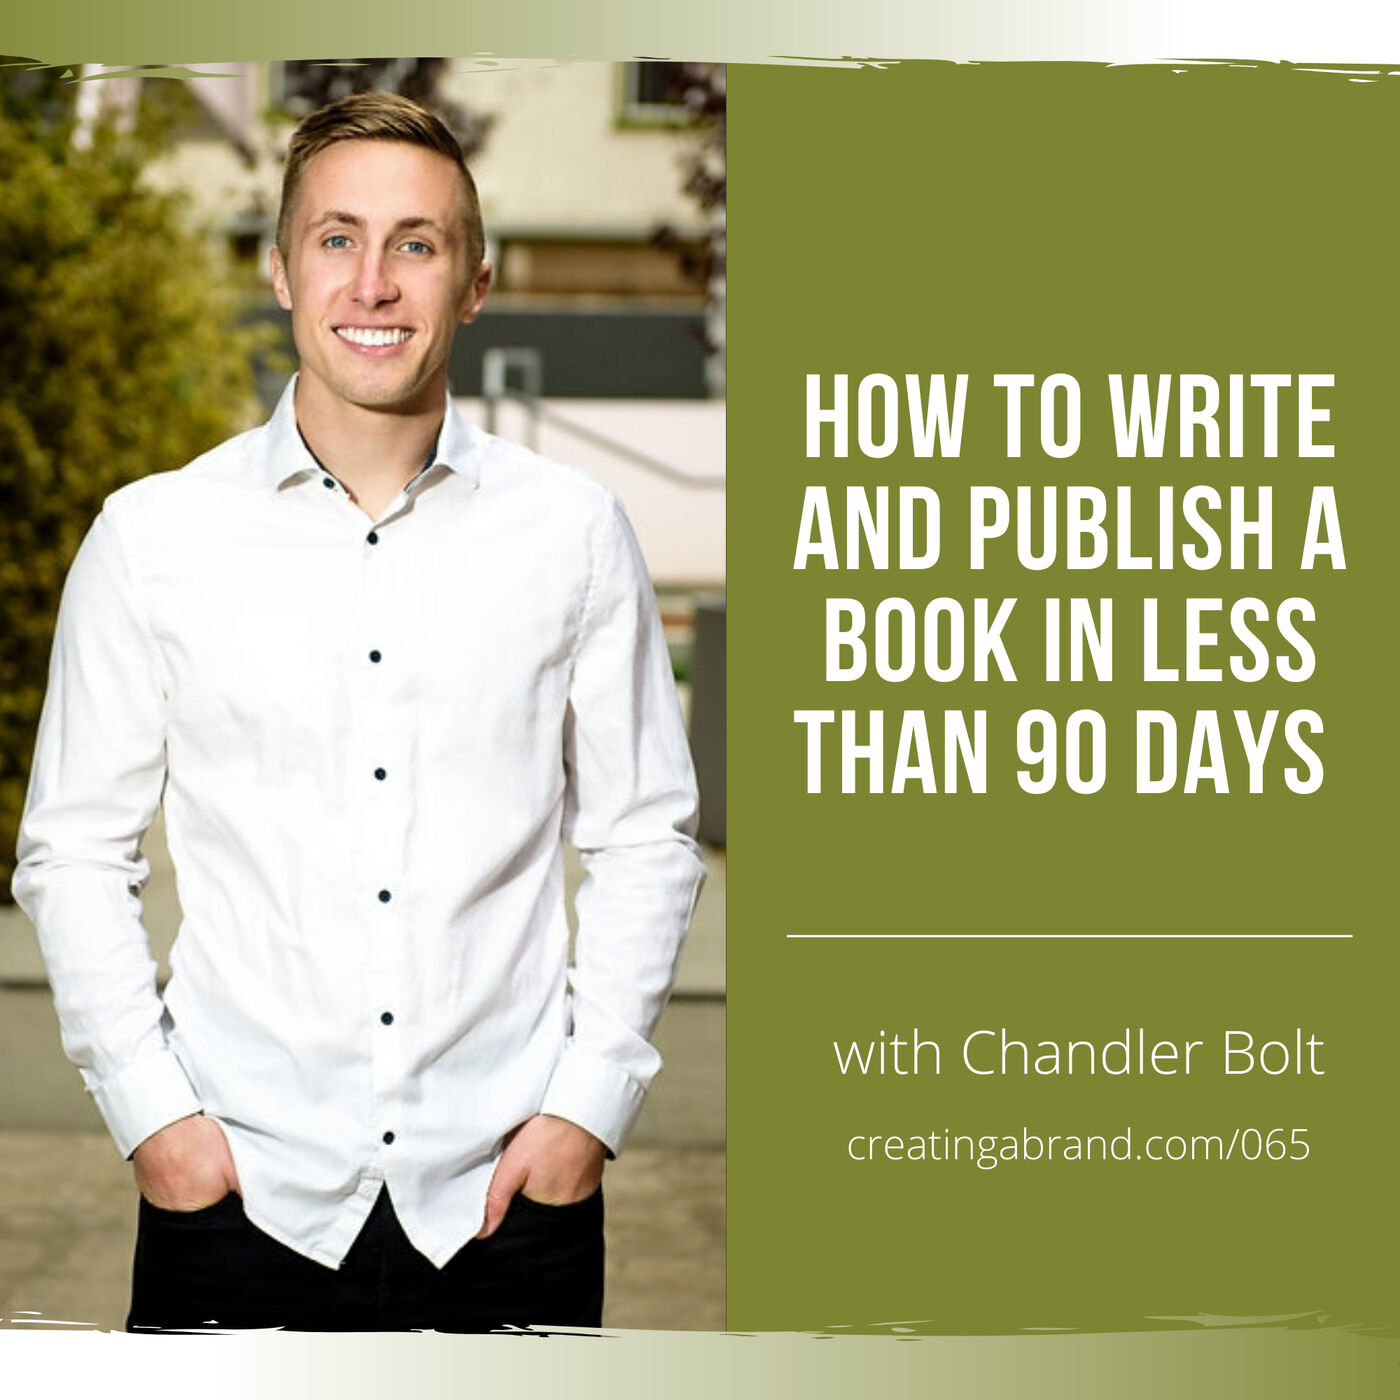 How to Write and Publish a Book in Less Than 90 Days with Chandler Bolt